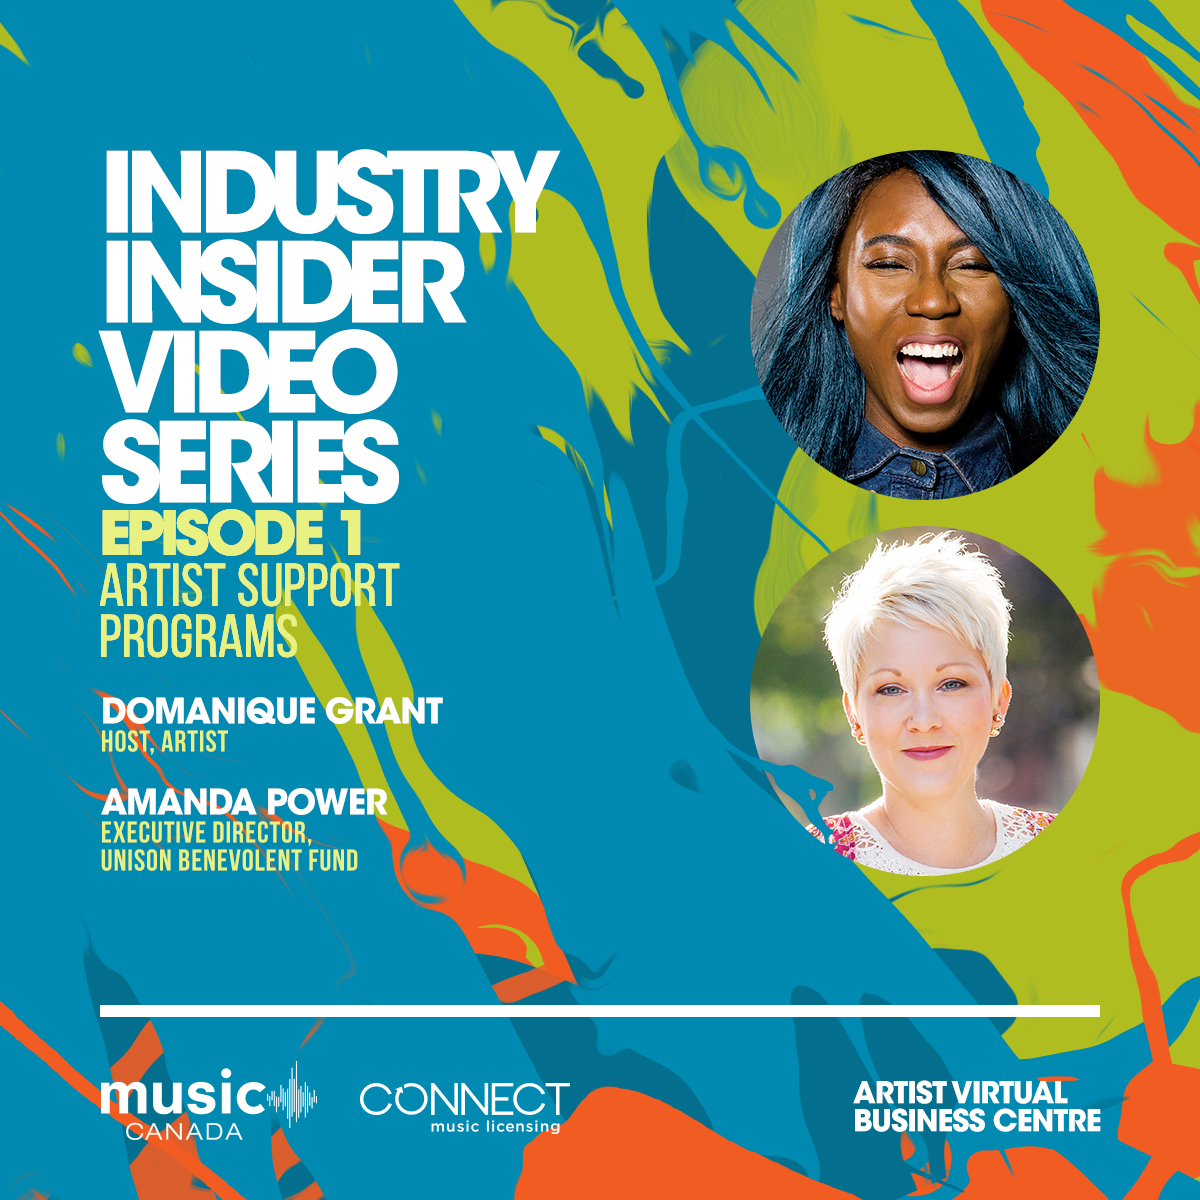 Tomorrow, Music Canada & @CONNECTml will premiere the first episode of our Industry Insider Video Series, hosted by Toronto-based artist @DomaniqueGrant! In Episode 1, Domanique speaks with Amanda Power, Executive Director of @UnisonFund, to provide artists and members of... https://t.co/VBsw3xGa3c